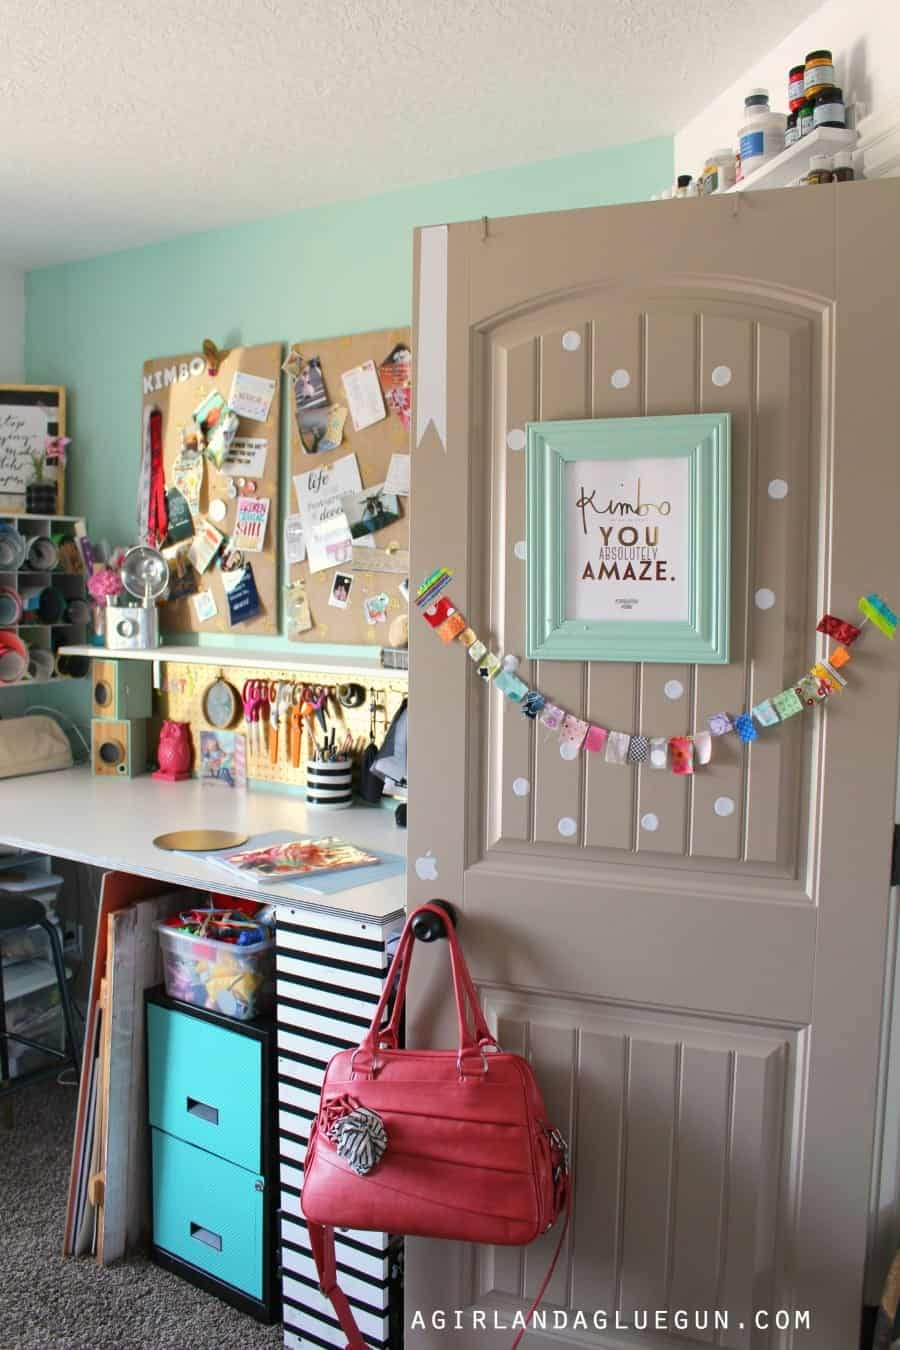 ... door of craft room & craft room tour! - A girl and a glue gun